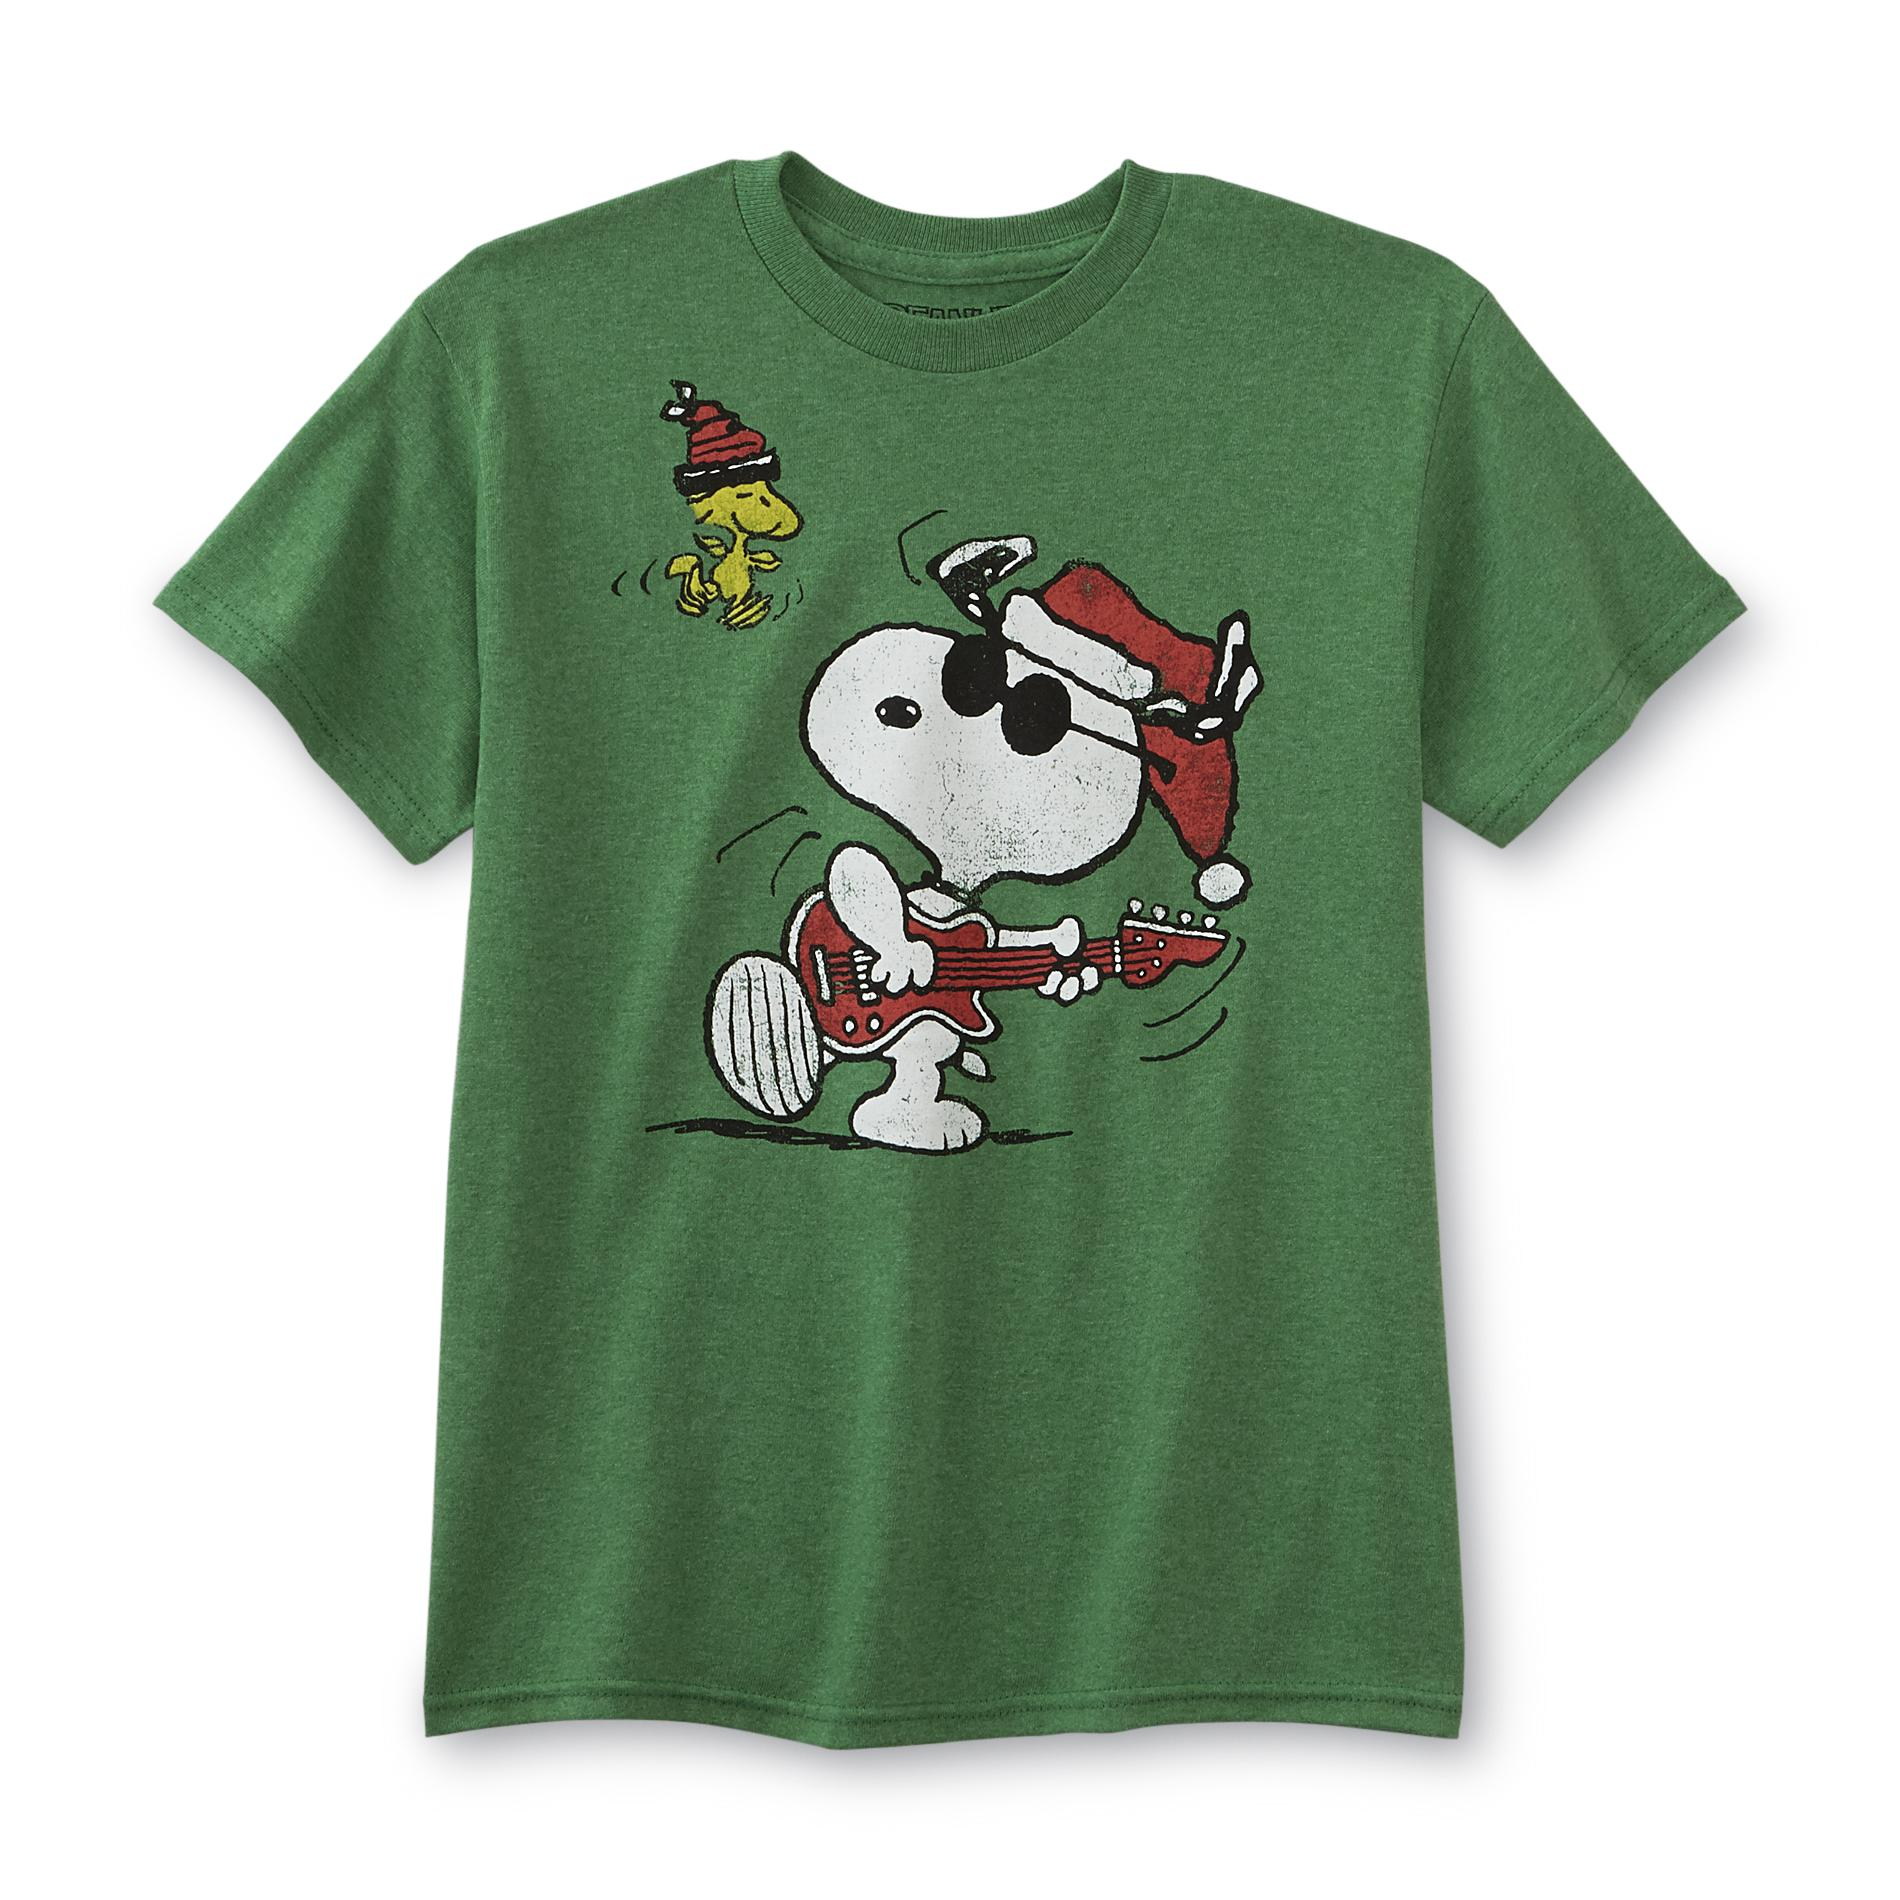 Peanuts By Schulz Snoopy Christmas Boys Graphic T Shirt